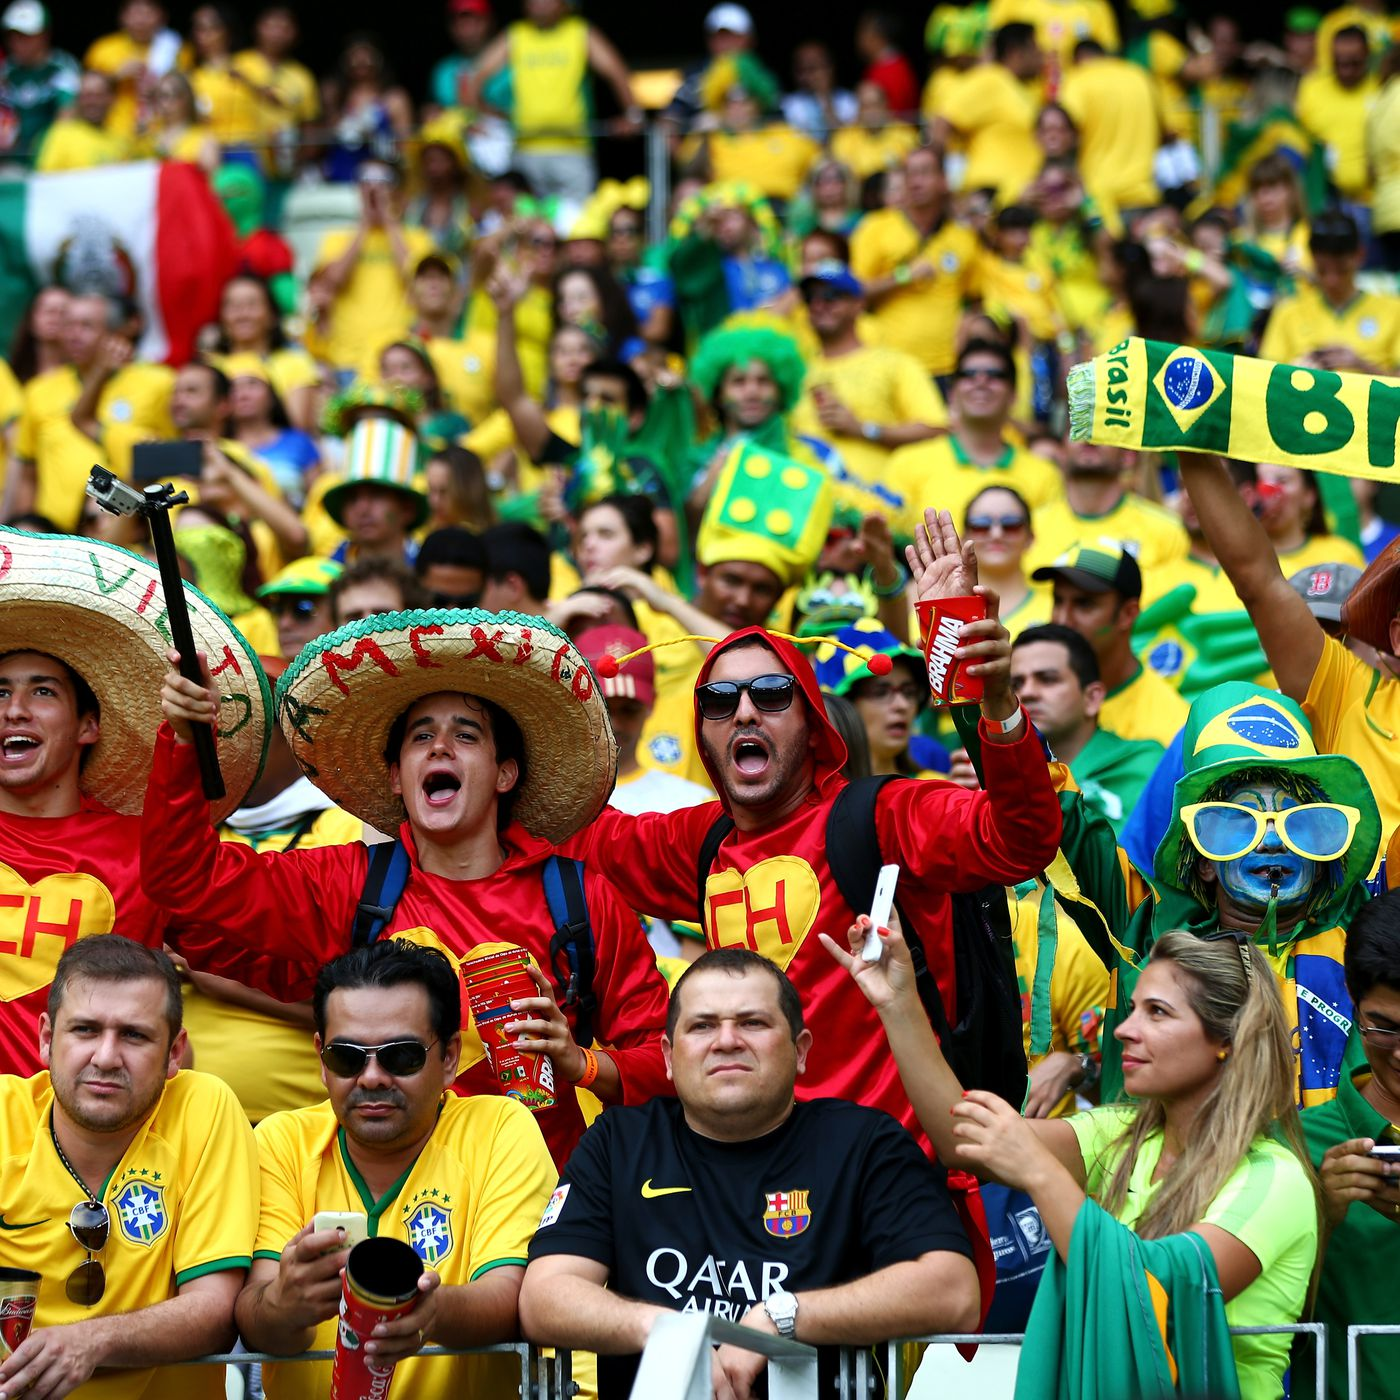 FIFA to investigate World Cup gay slurs by Brazil, Mexico fans - Outsports